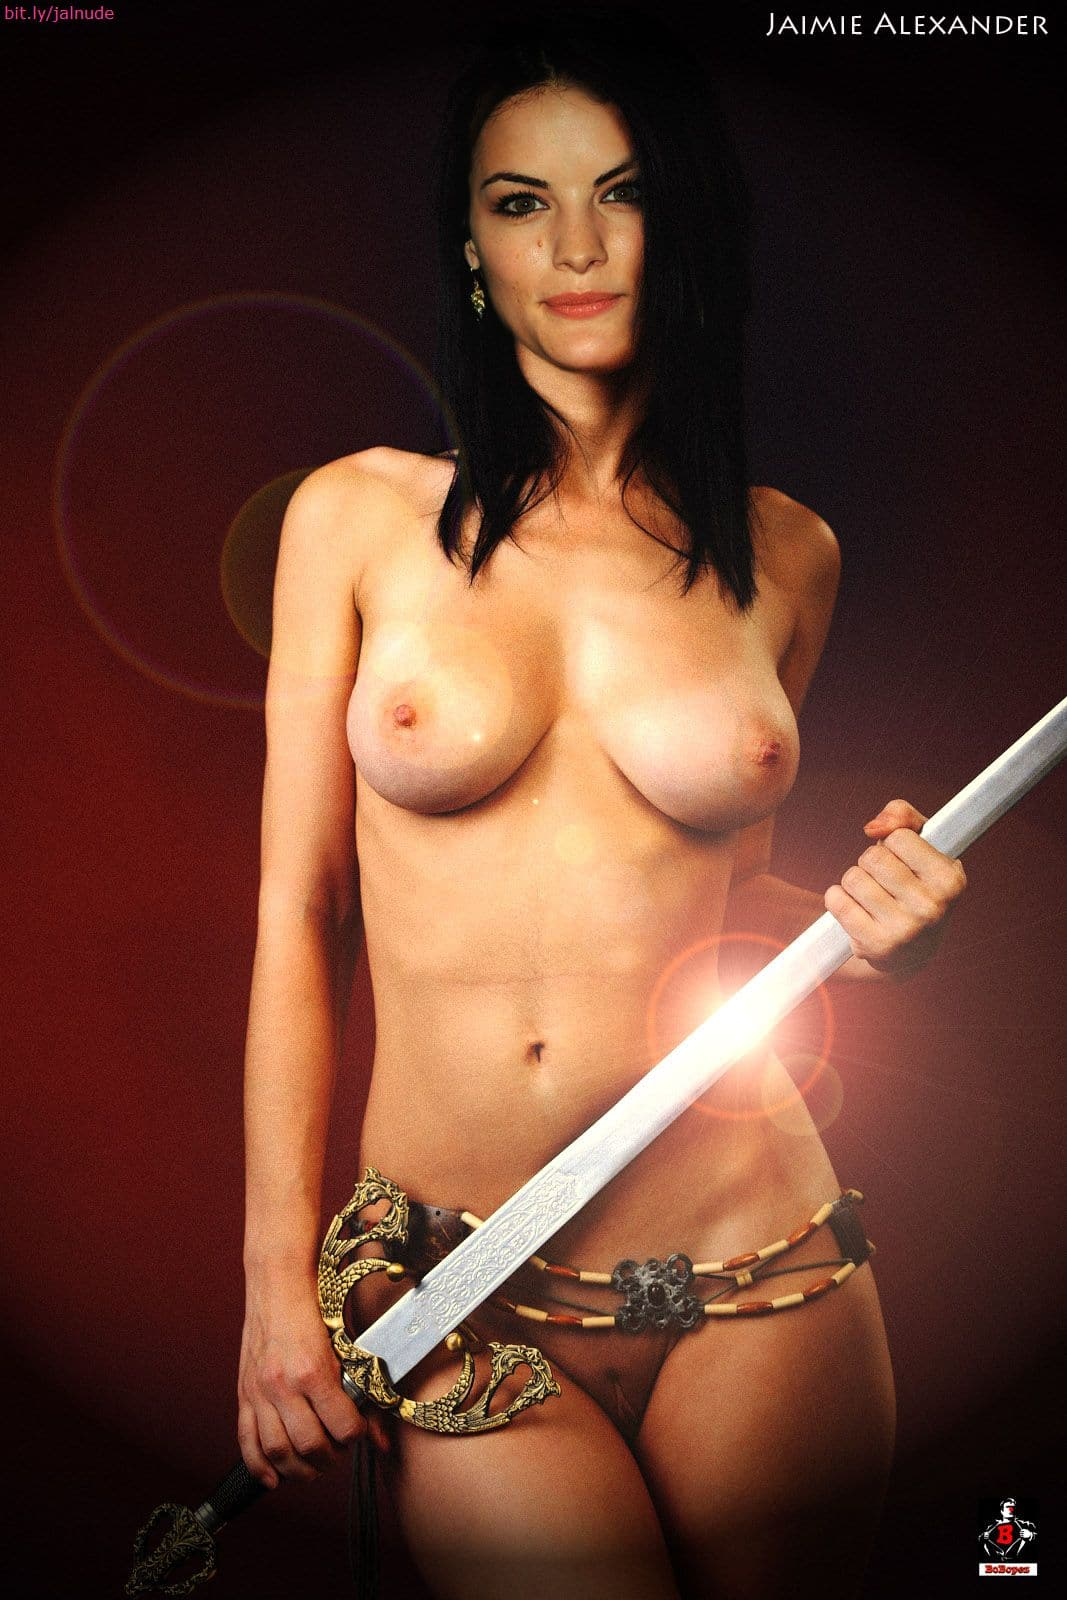 Nude pictures of jaimie alexander not agree